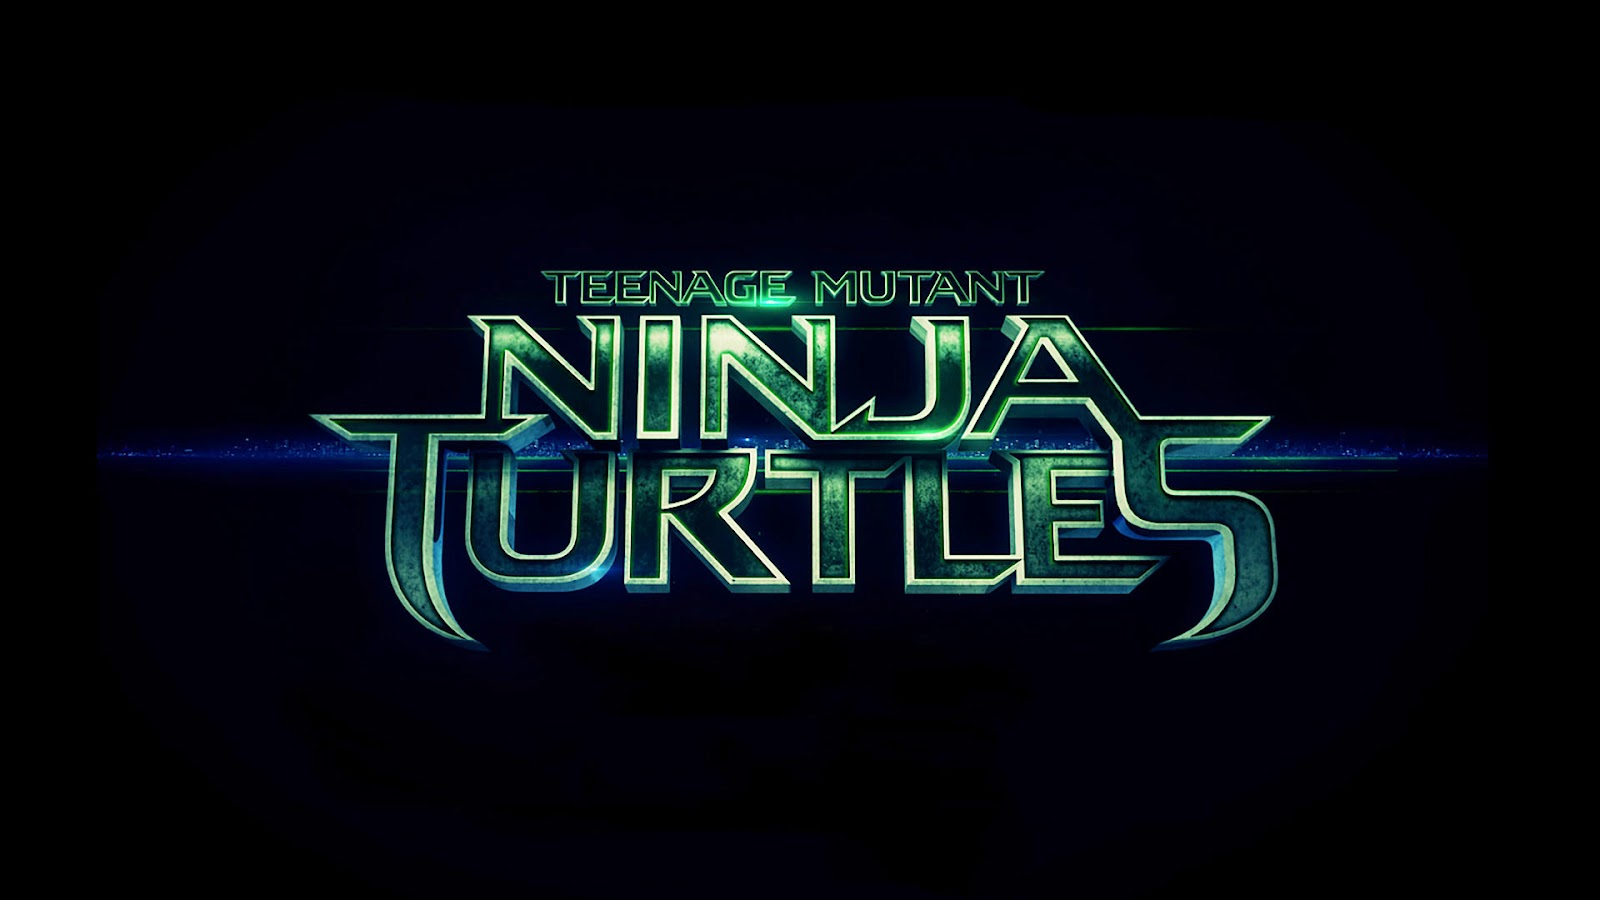 Watch Teenage Mutant Ninja Turtles Movie Download Torrent Online